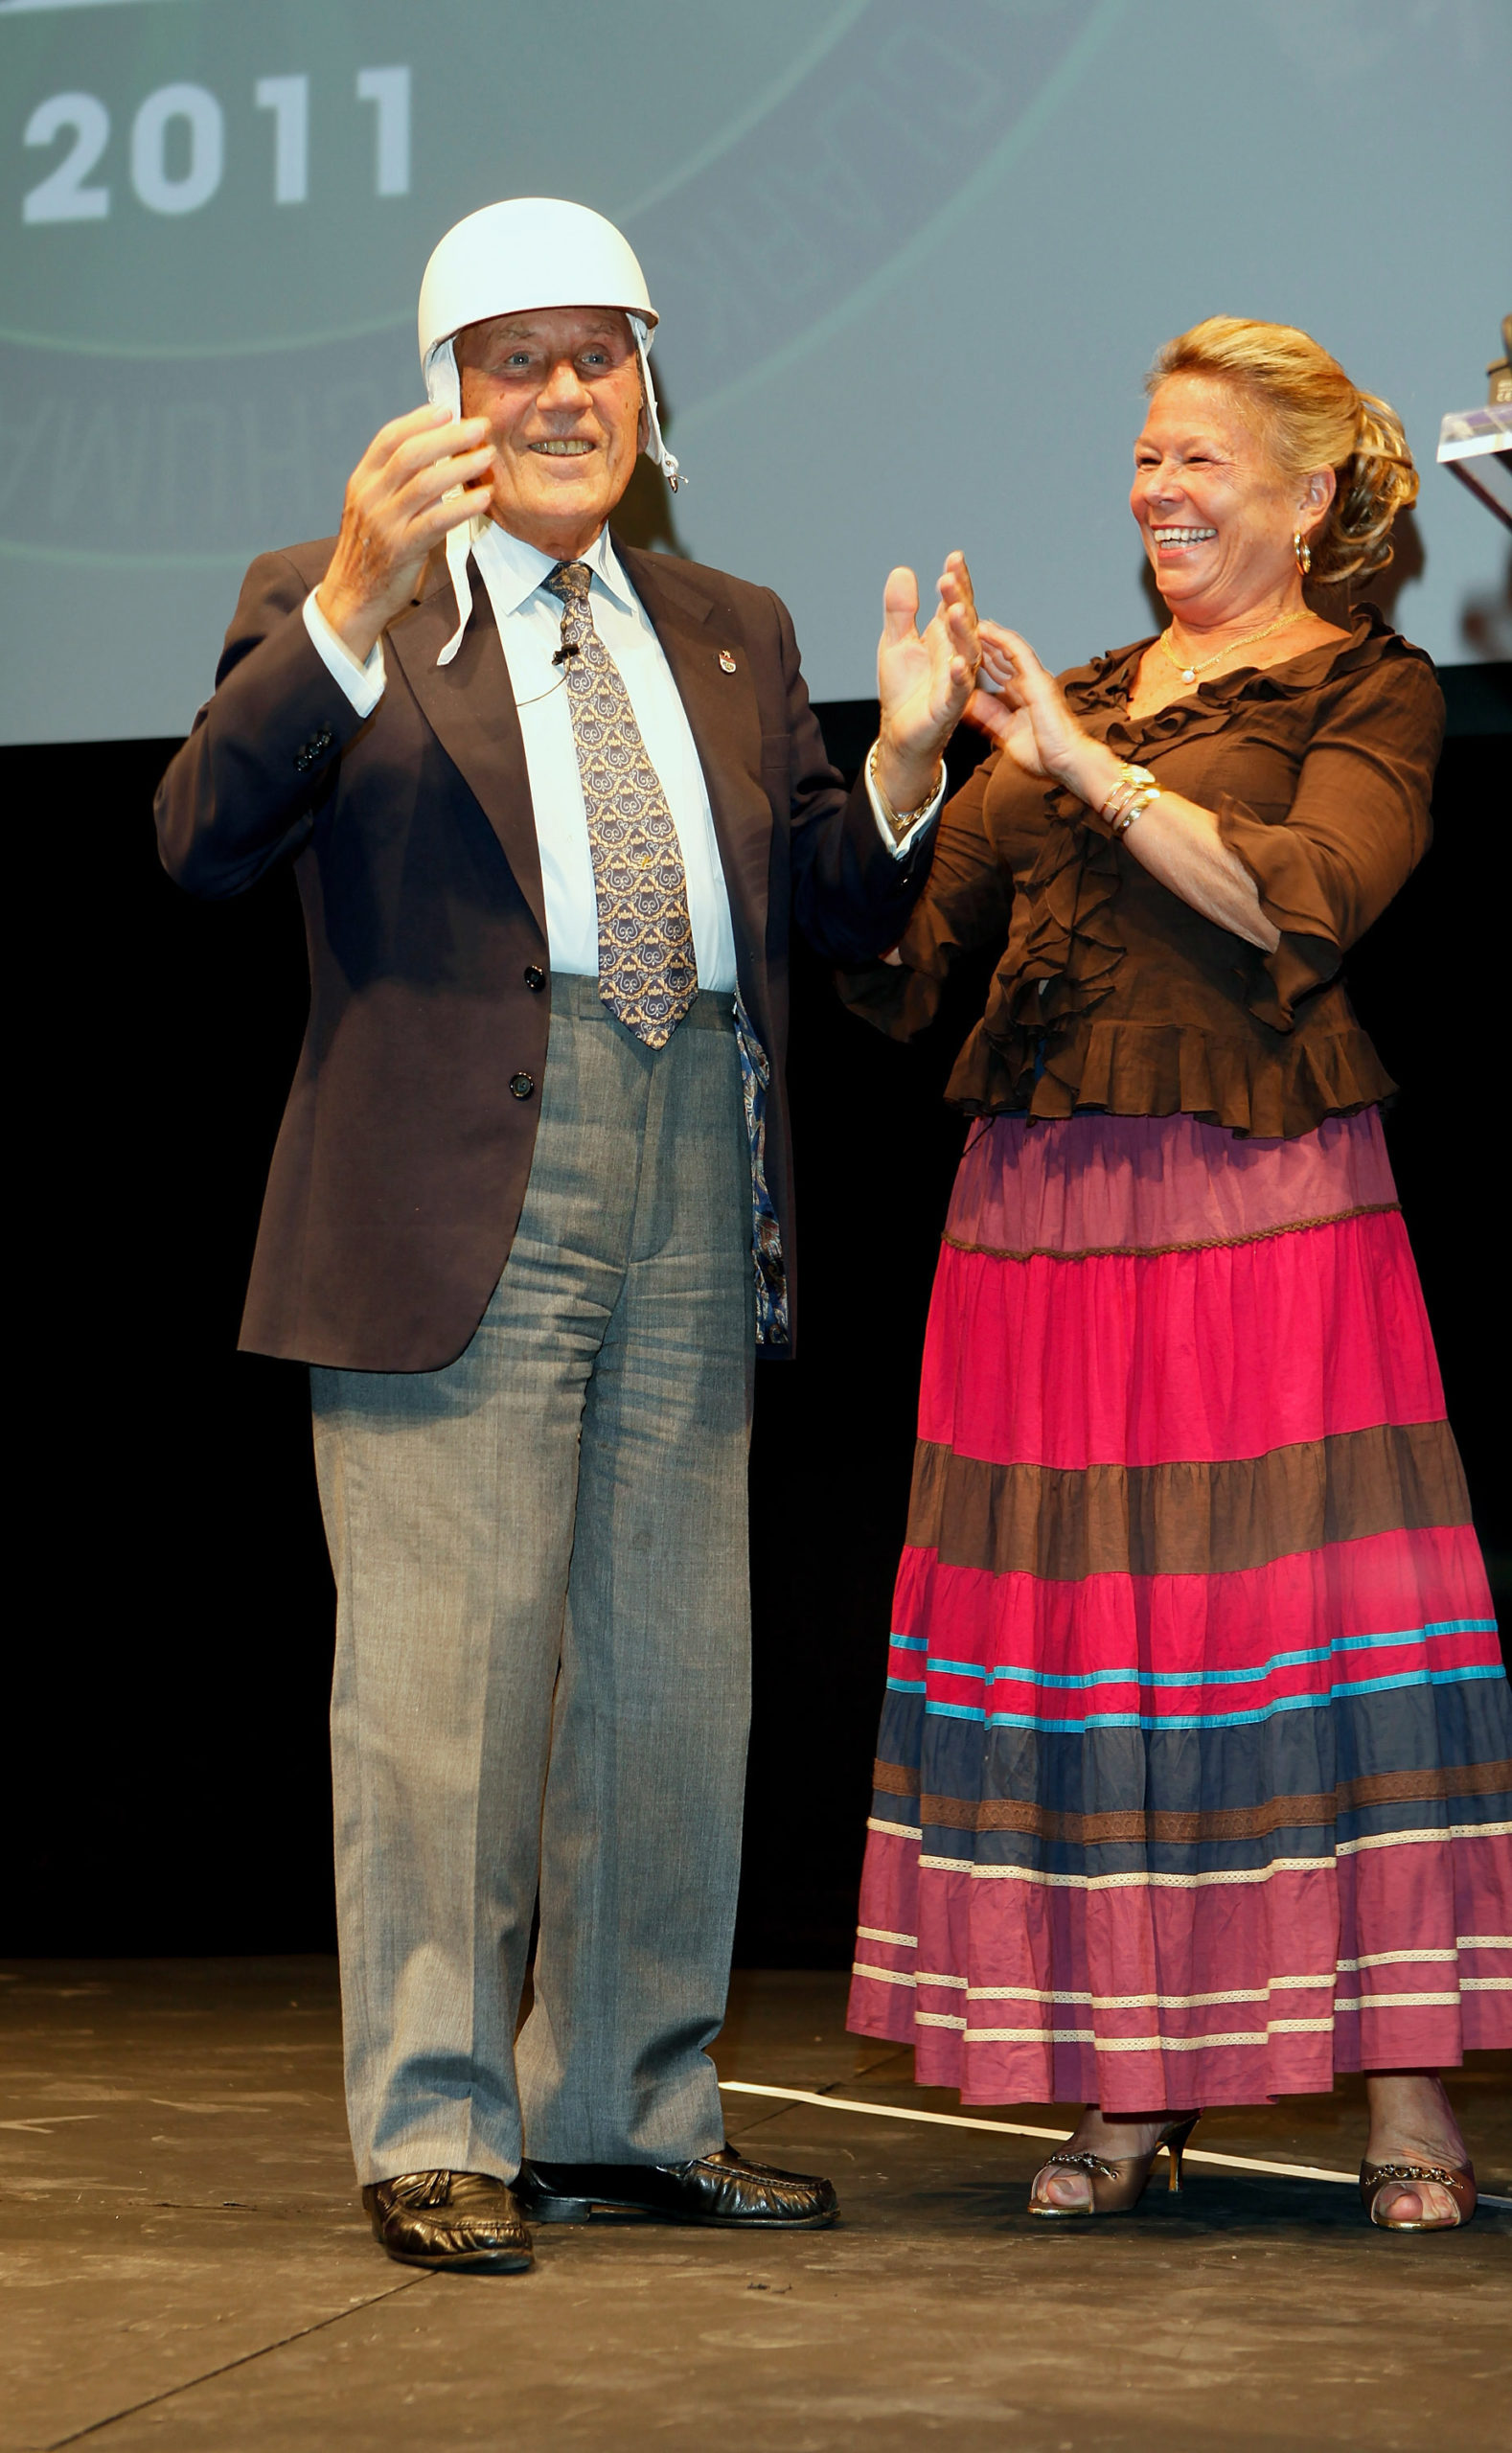 Stirling-and-Susie-Moss-at-the-Motor-Sport-Hall-of-Fame-2011-awards